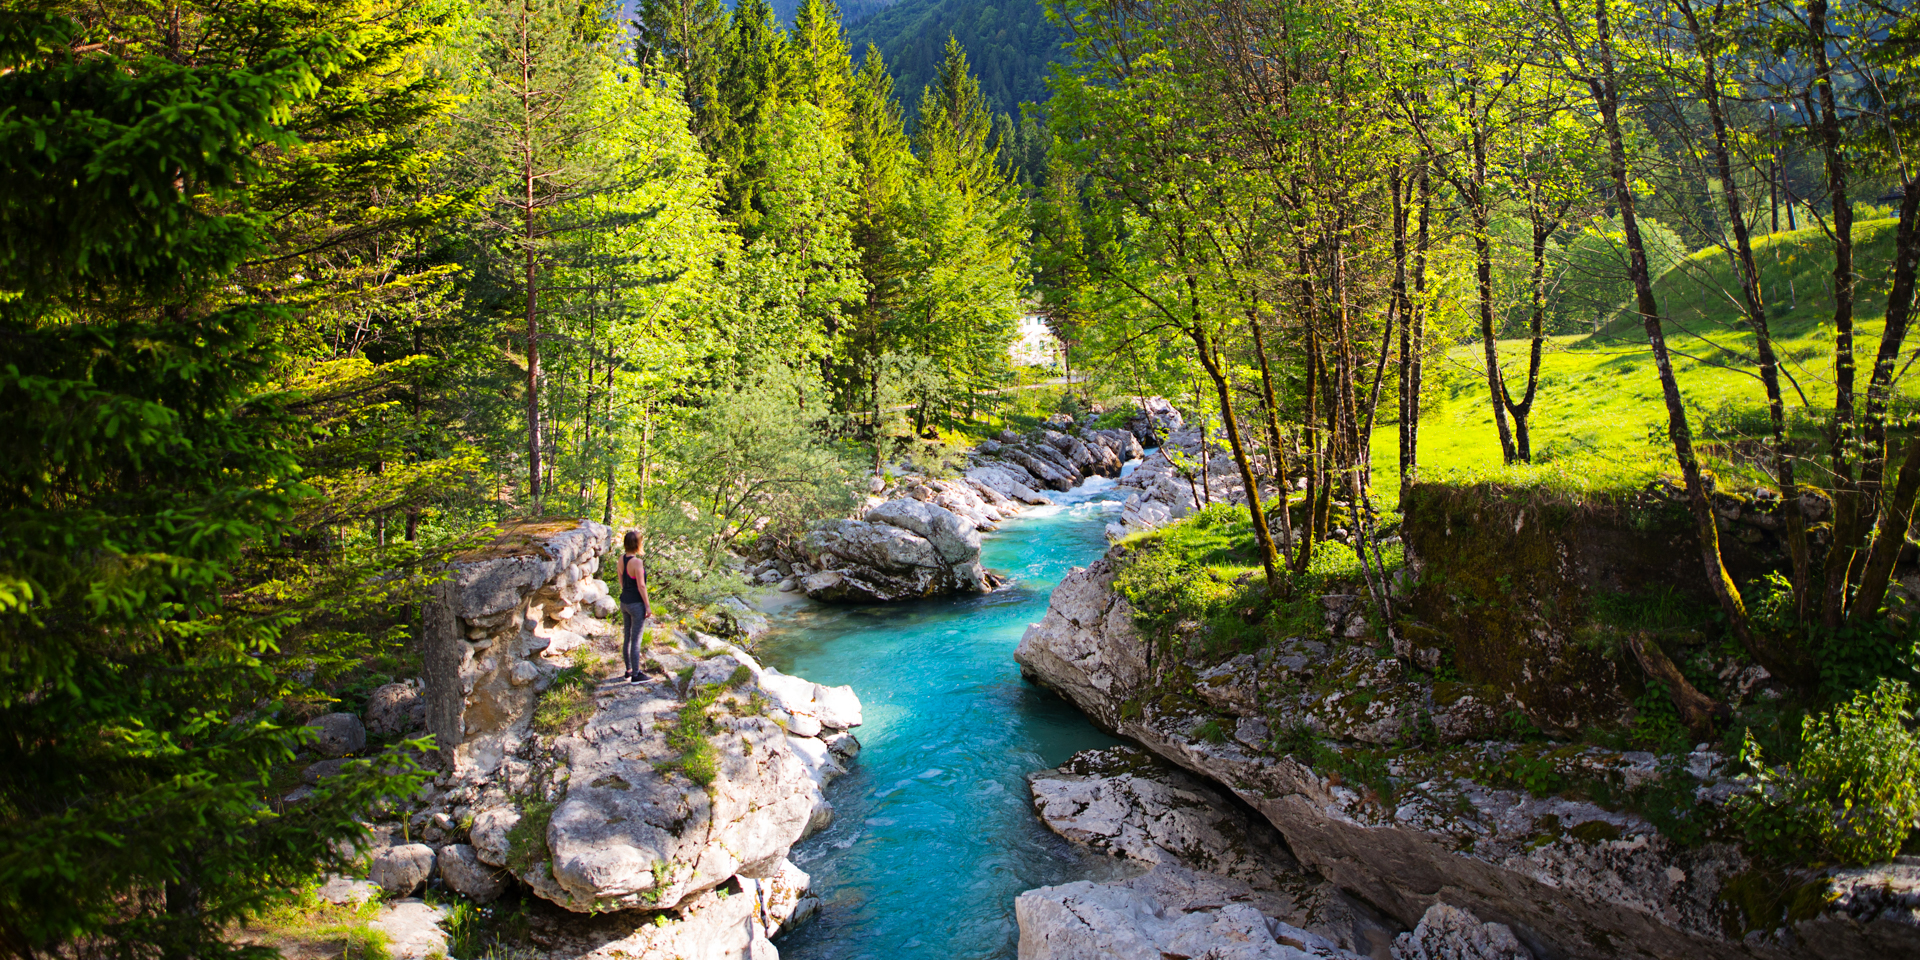 slovenia-photo-tours-bovec-mangart-saddle-2